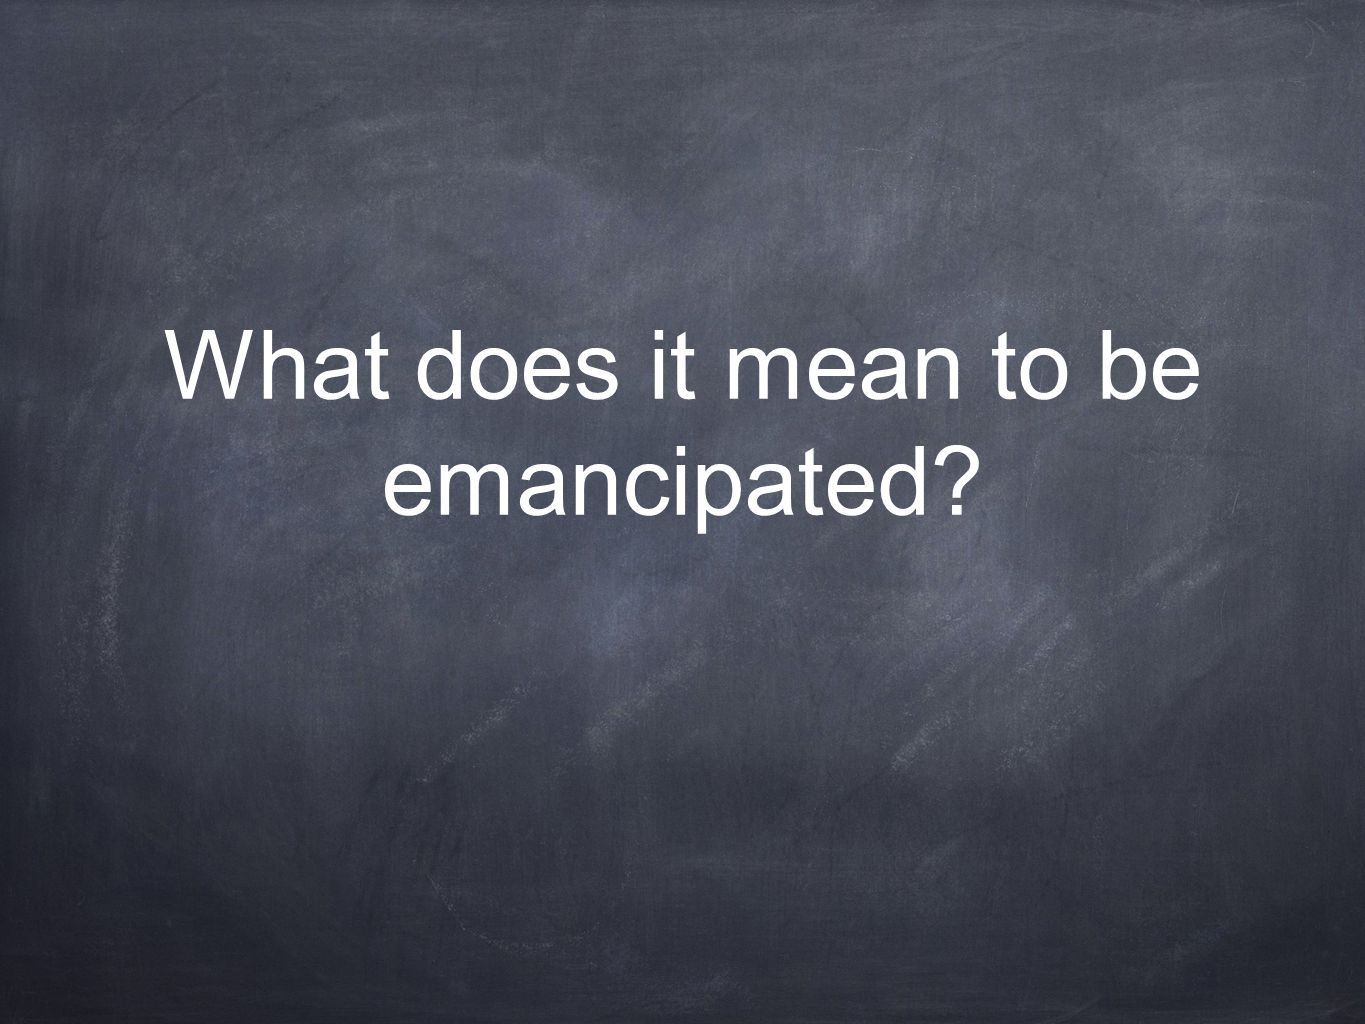 What does it mean to be emancipated